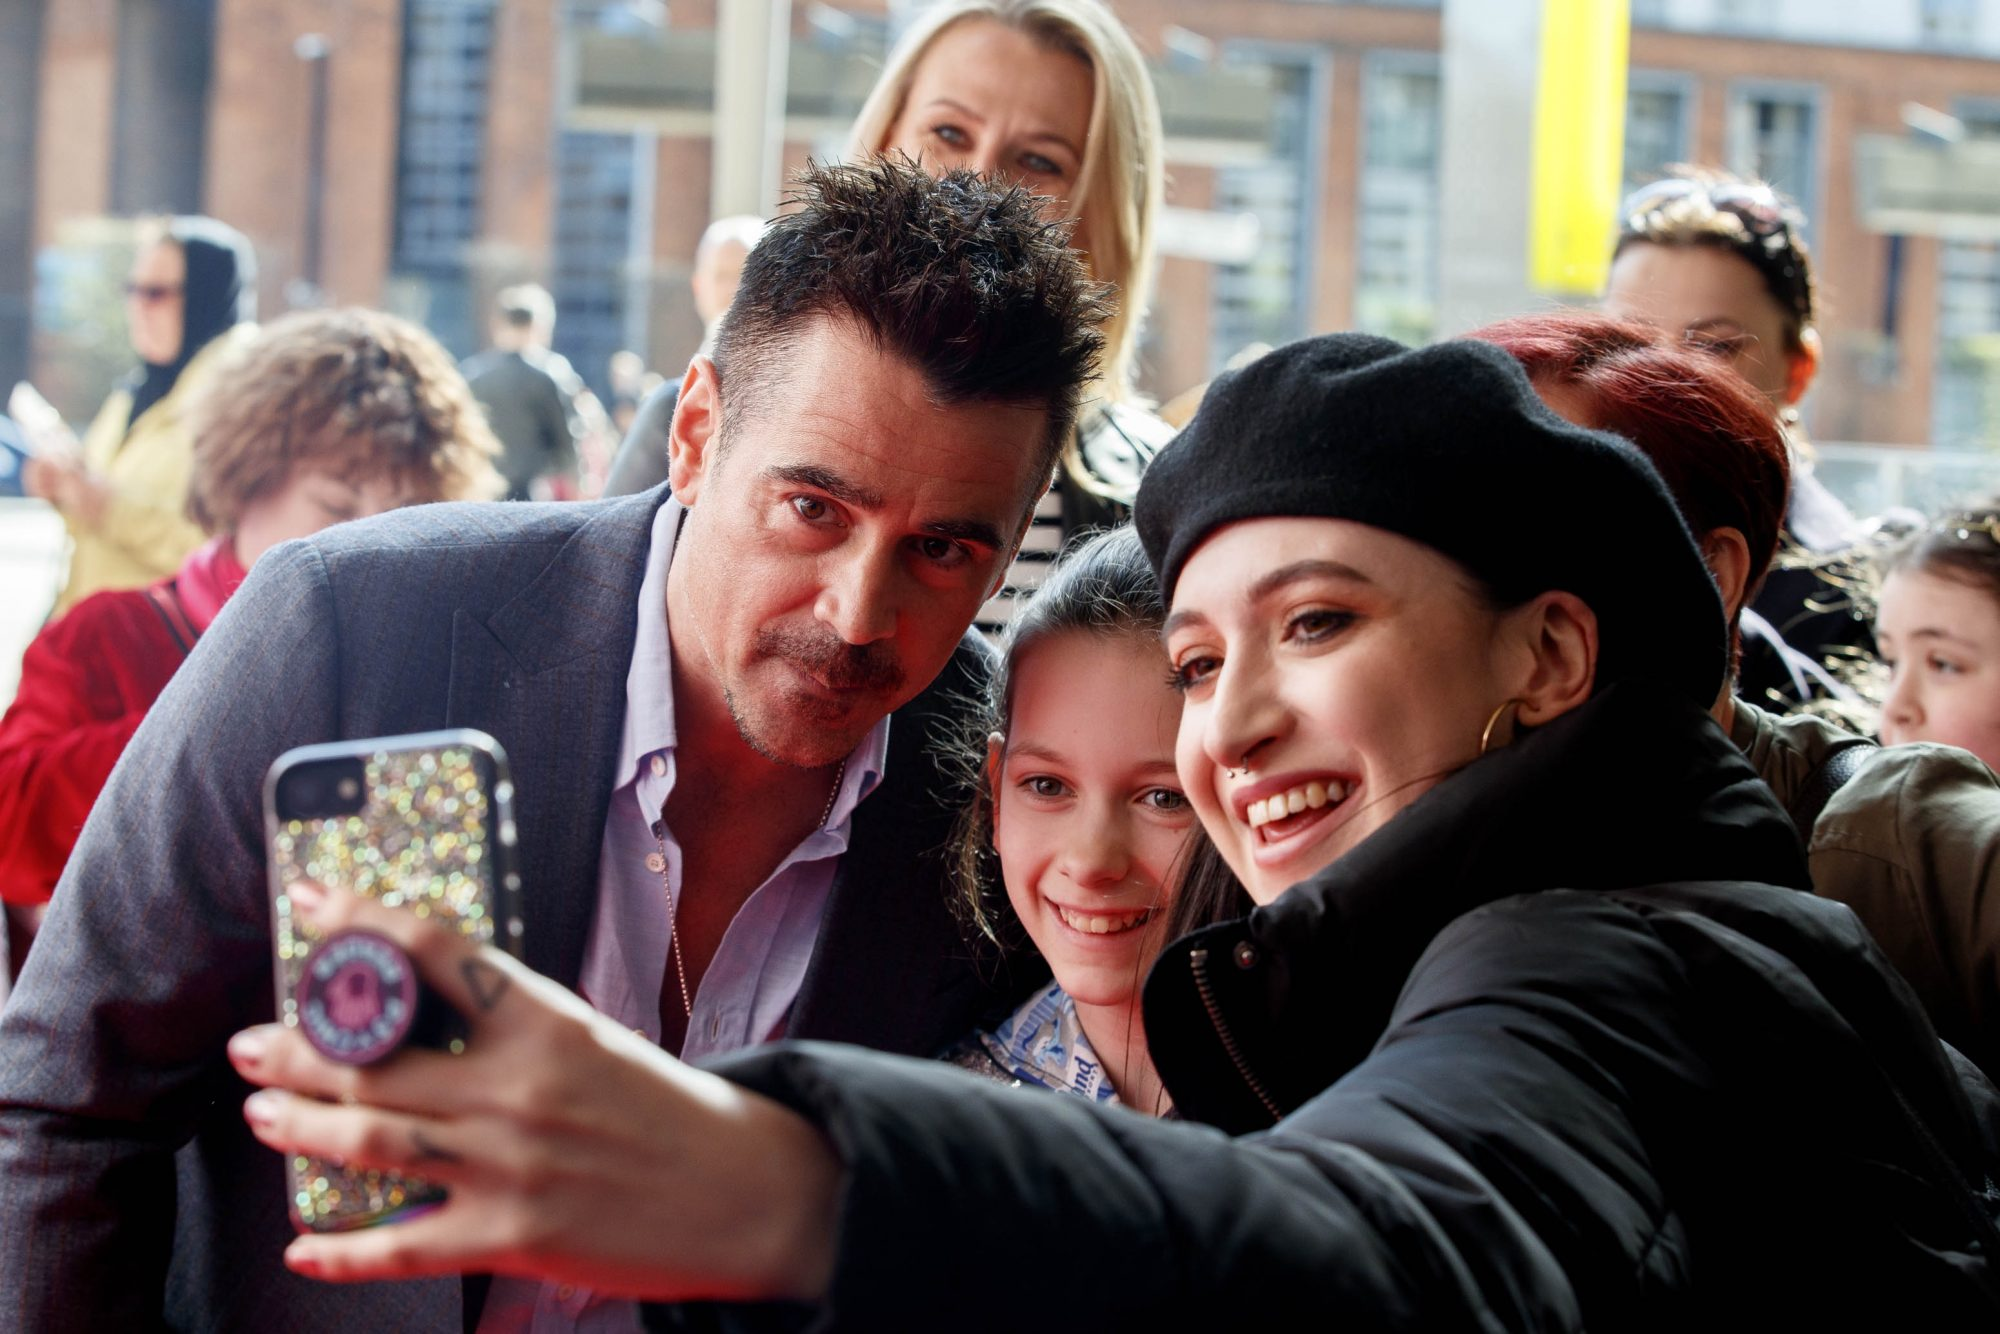 24/03/2019 Colin Farrell pictured on the red carpet at the Irish Premiere screening of Disney's DUMBO in the Light House Cinema Dublin with Ciara and Leanne Woodfull. Picture: Andres Poveda